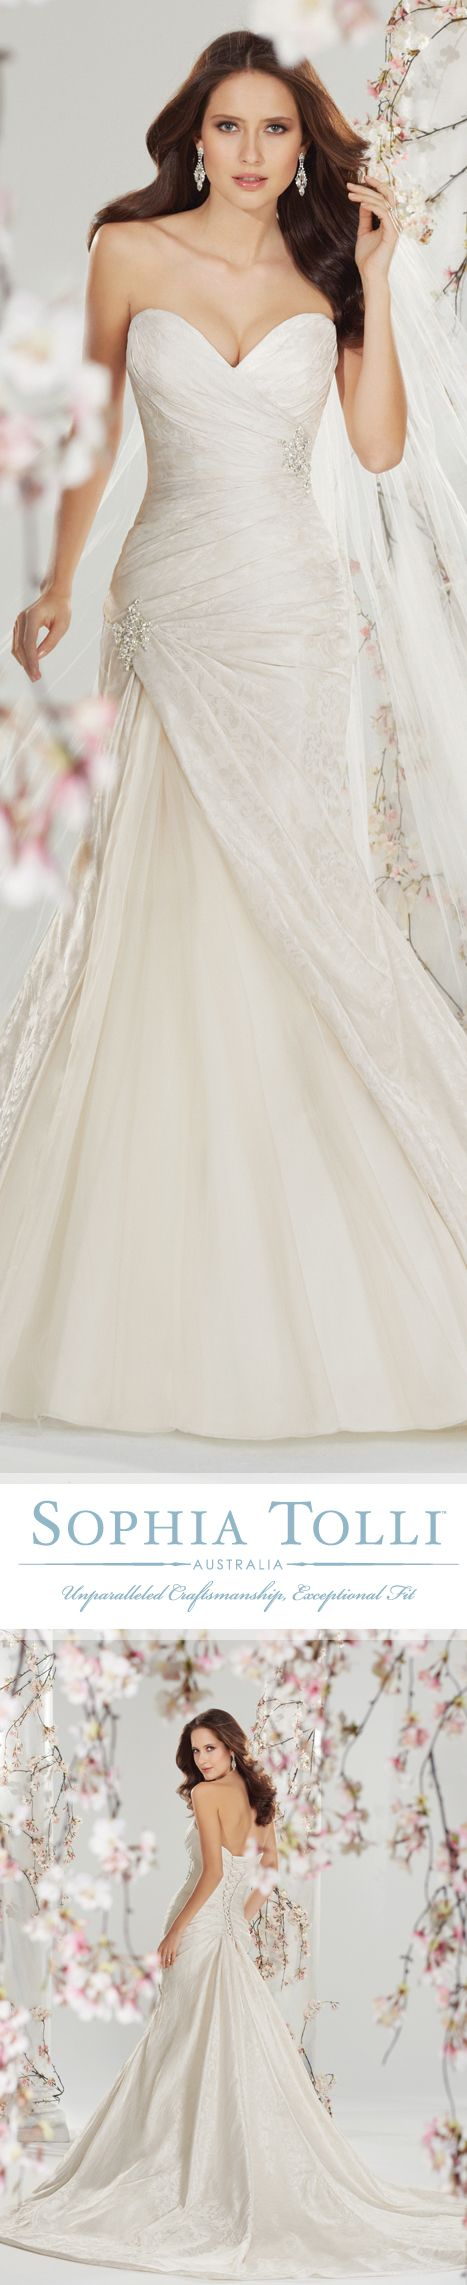 Wedding Skirts And Style On Pinterest